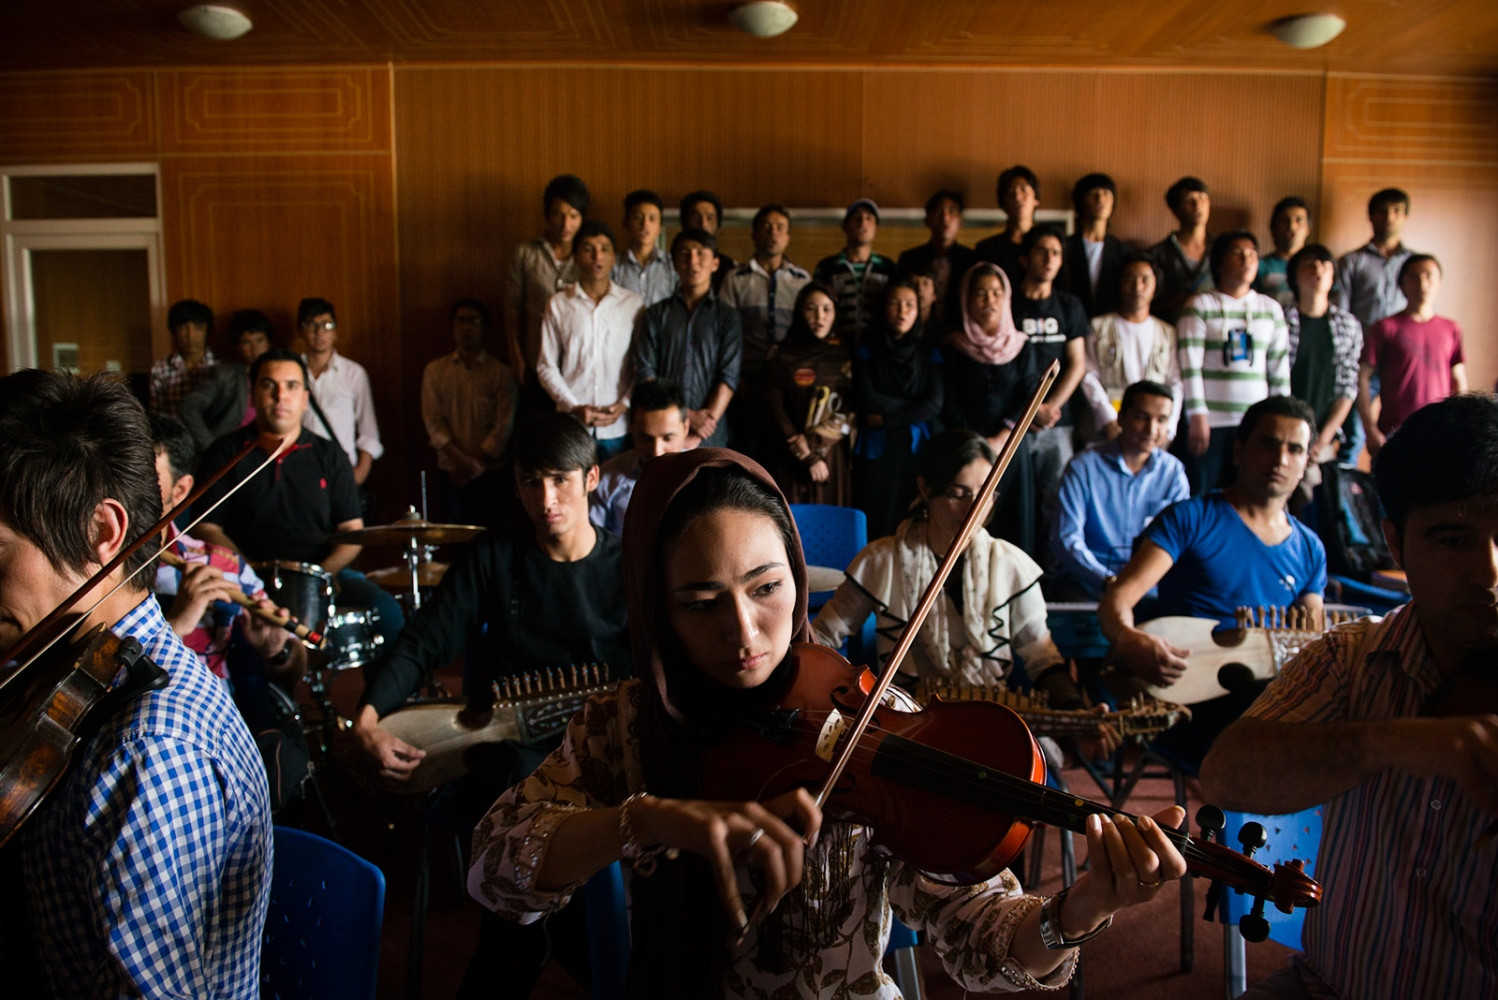 KABUL, AFGHANISTAN | 2015-06-13 | Students at Faculty of Music at Kabul University, some in the classical program, other in traditional music, rehearse together for an upcoming orchestra playing for a national holiday.